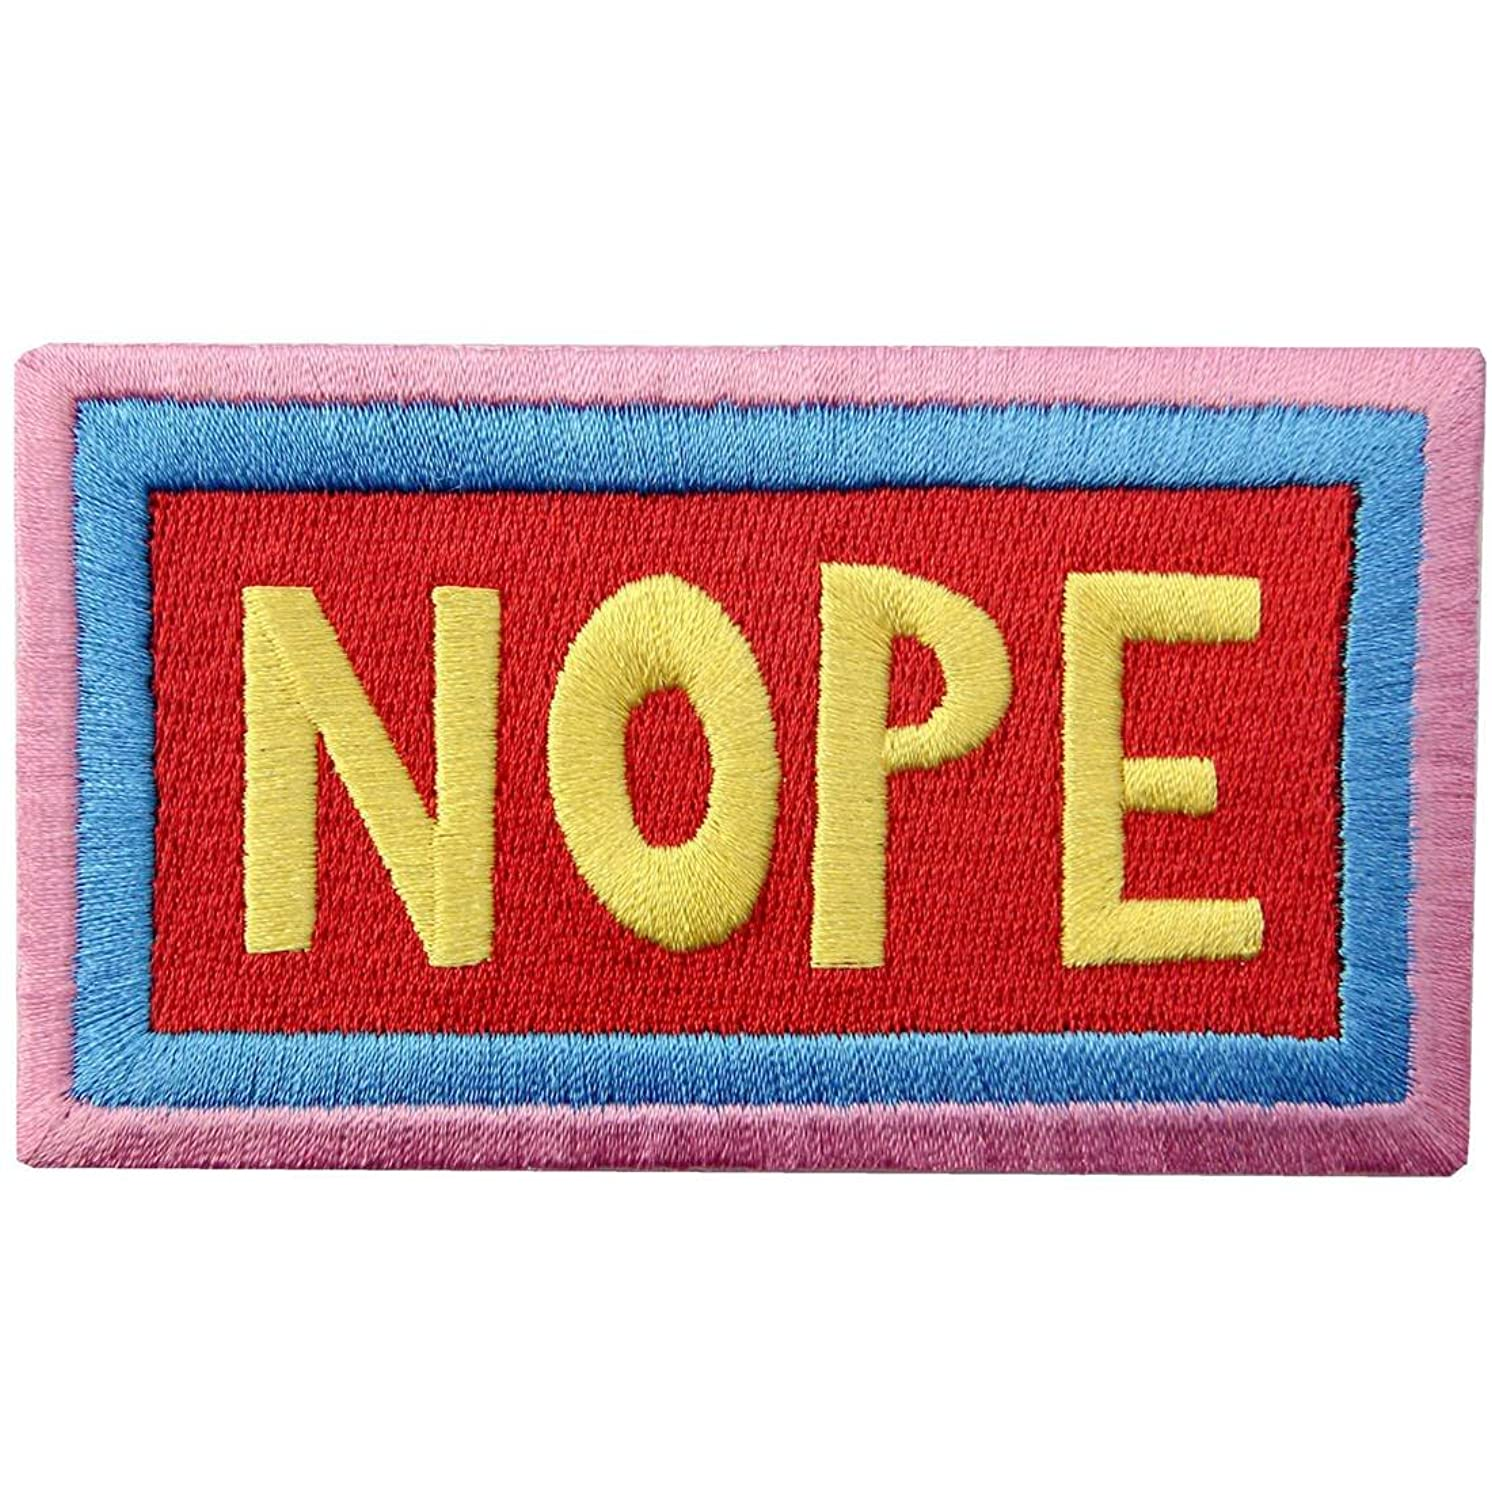 Nope Patch Embroidered Applique Iron On Sew On Emblem